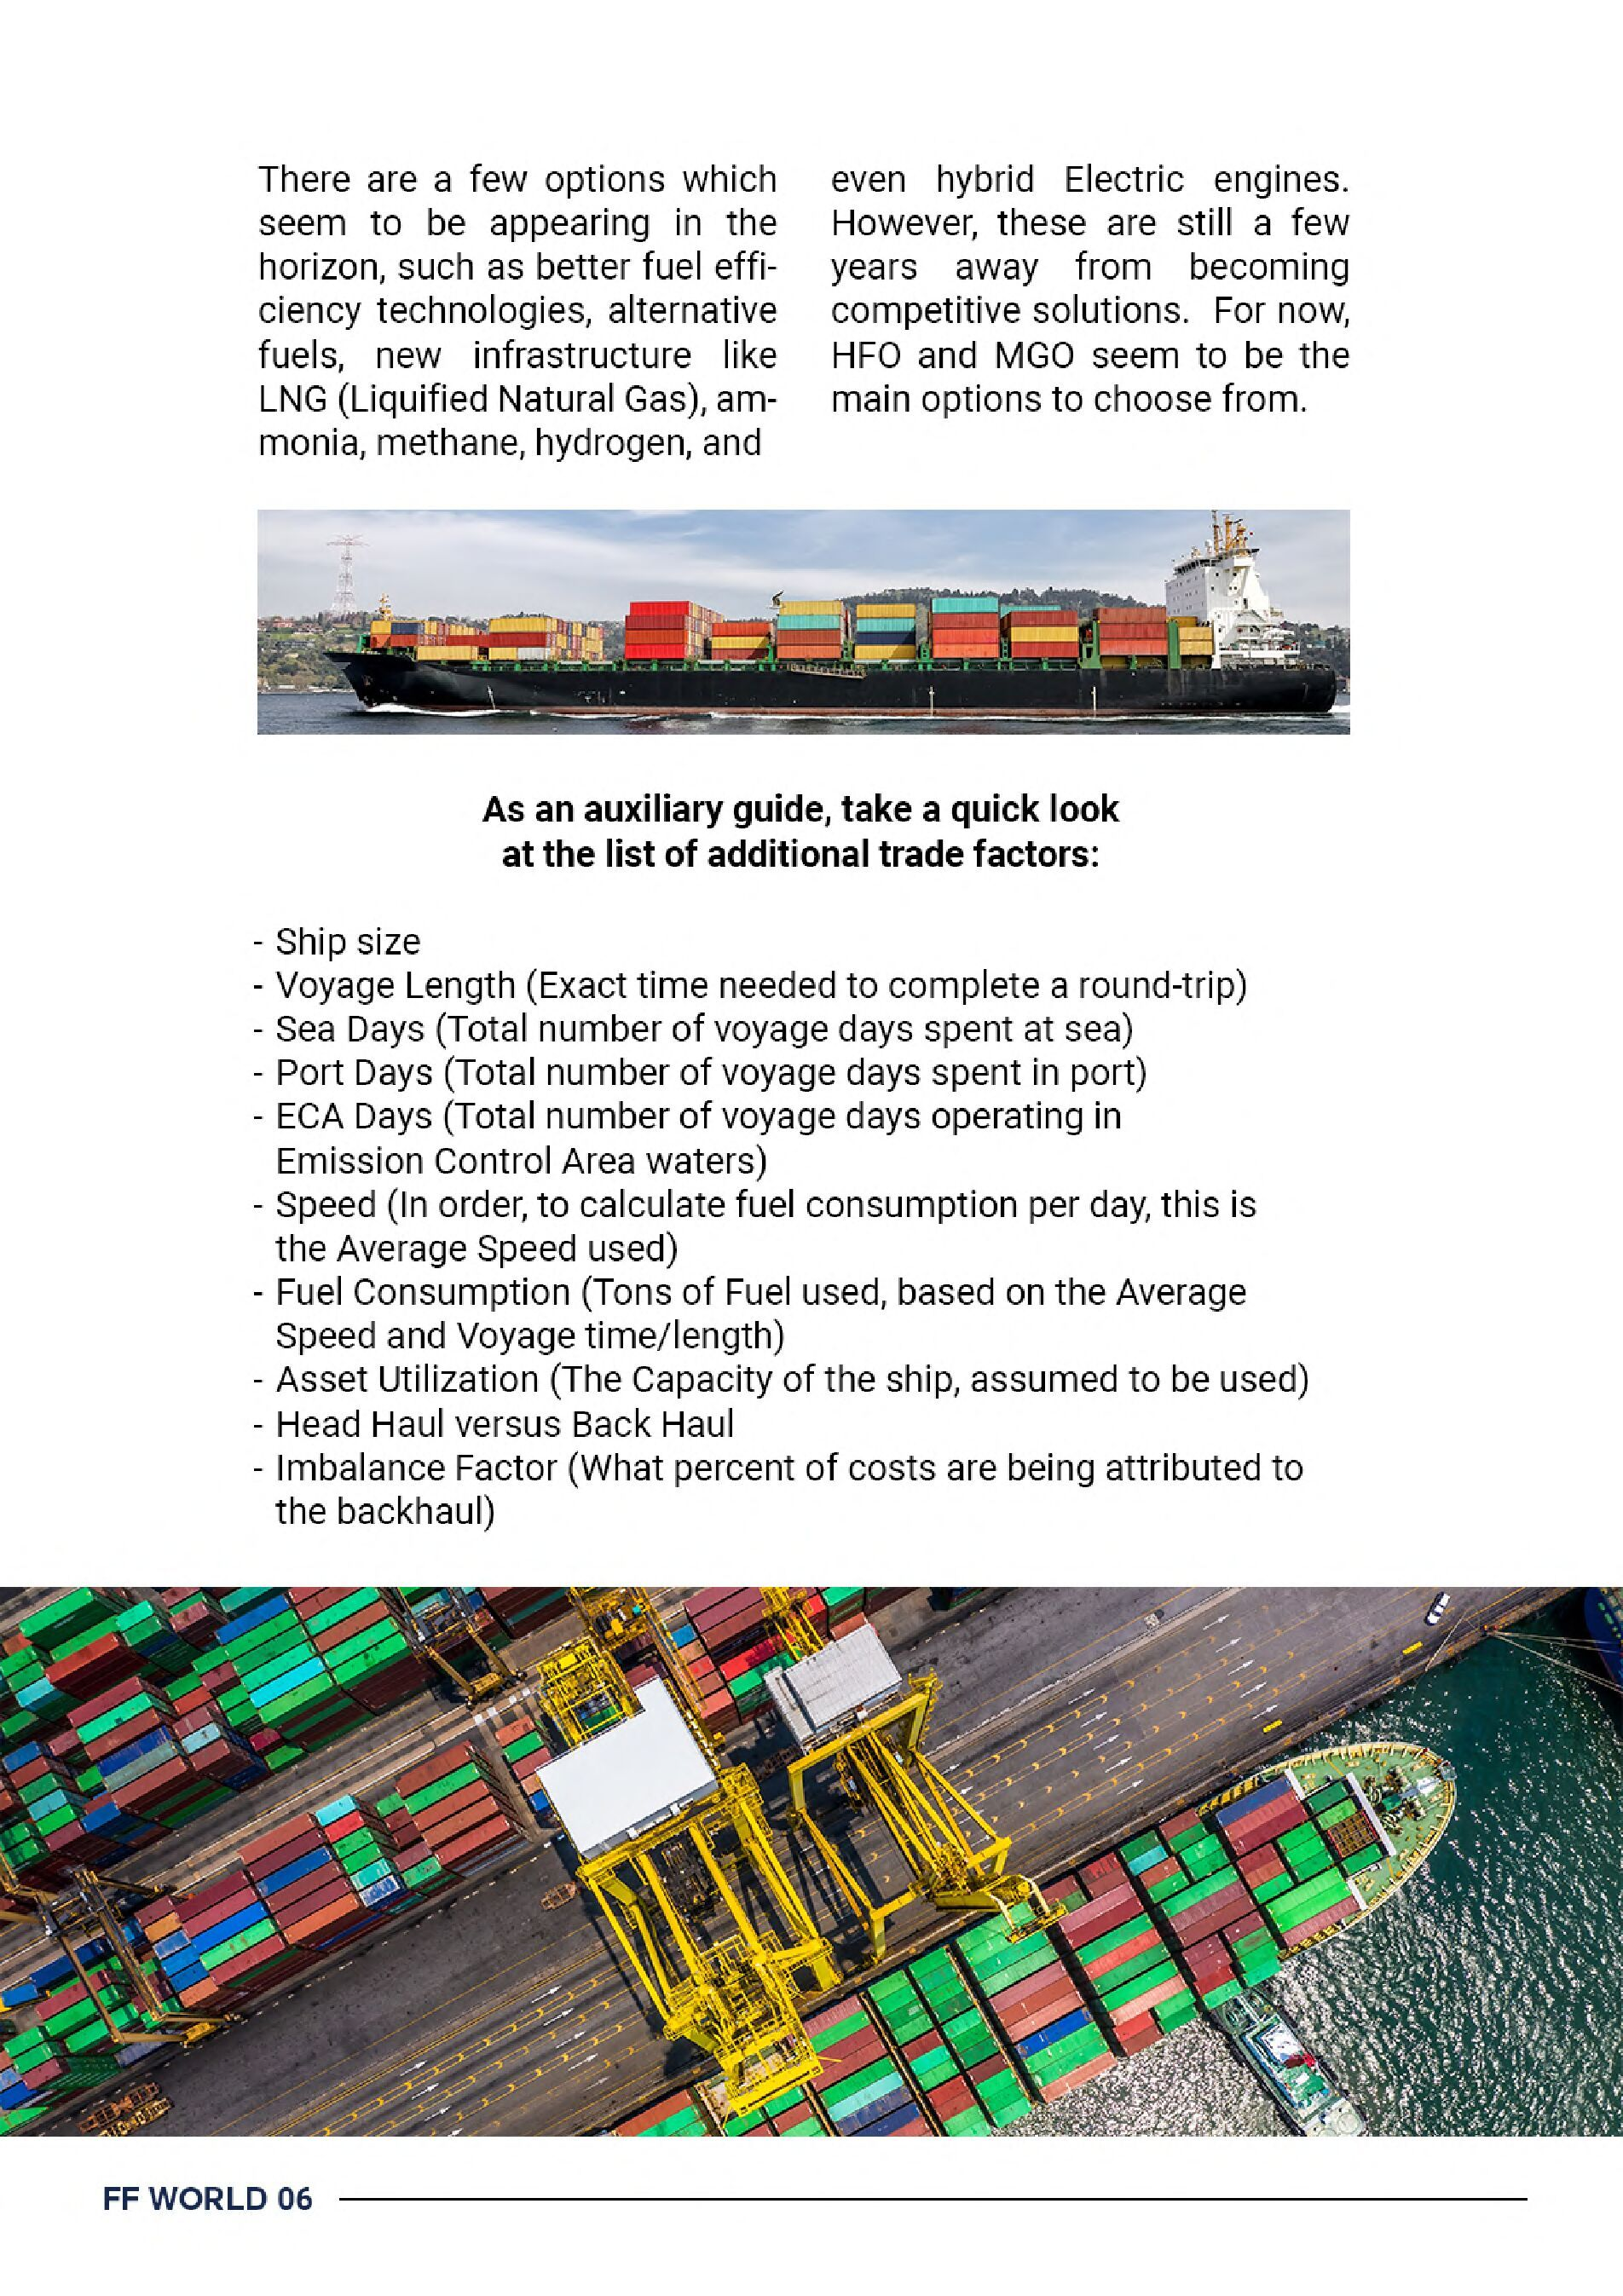 Freight Forwarders' World's